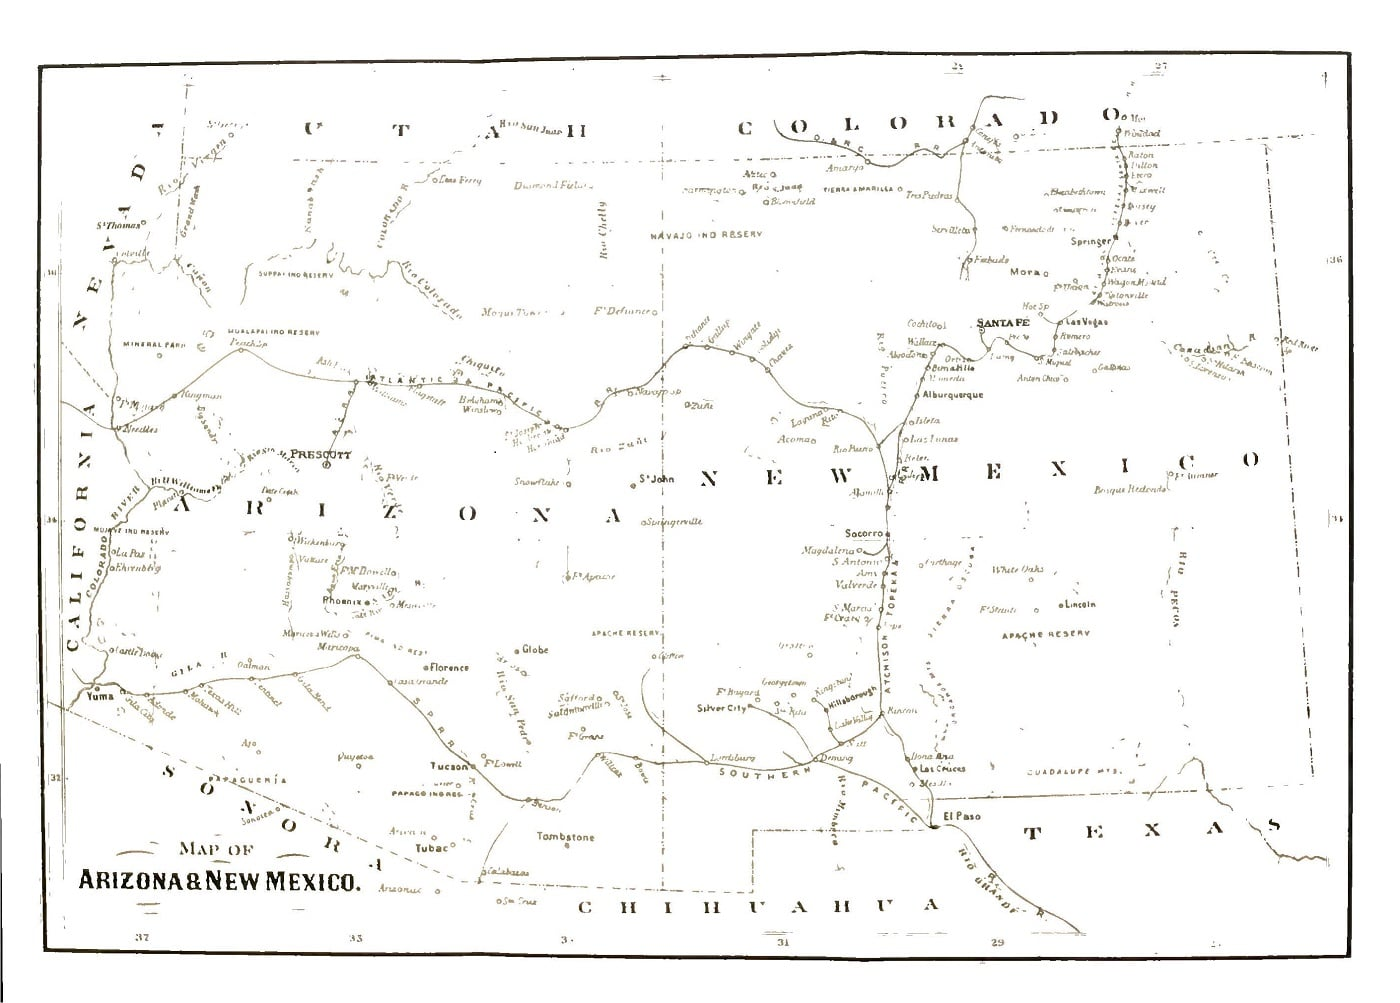 History of Arizona and New Mexico by Bancroft web